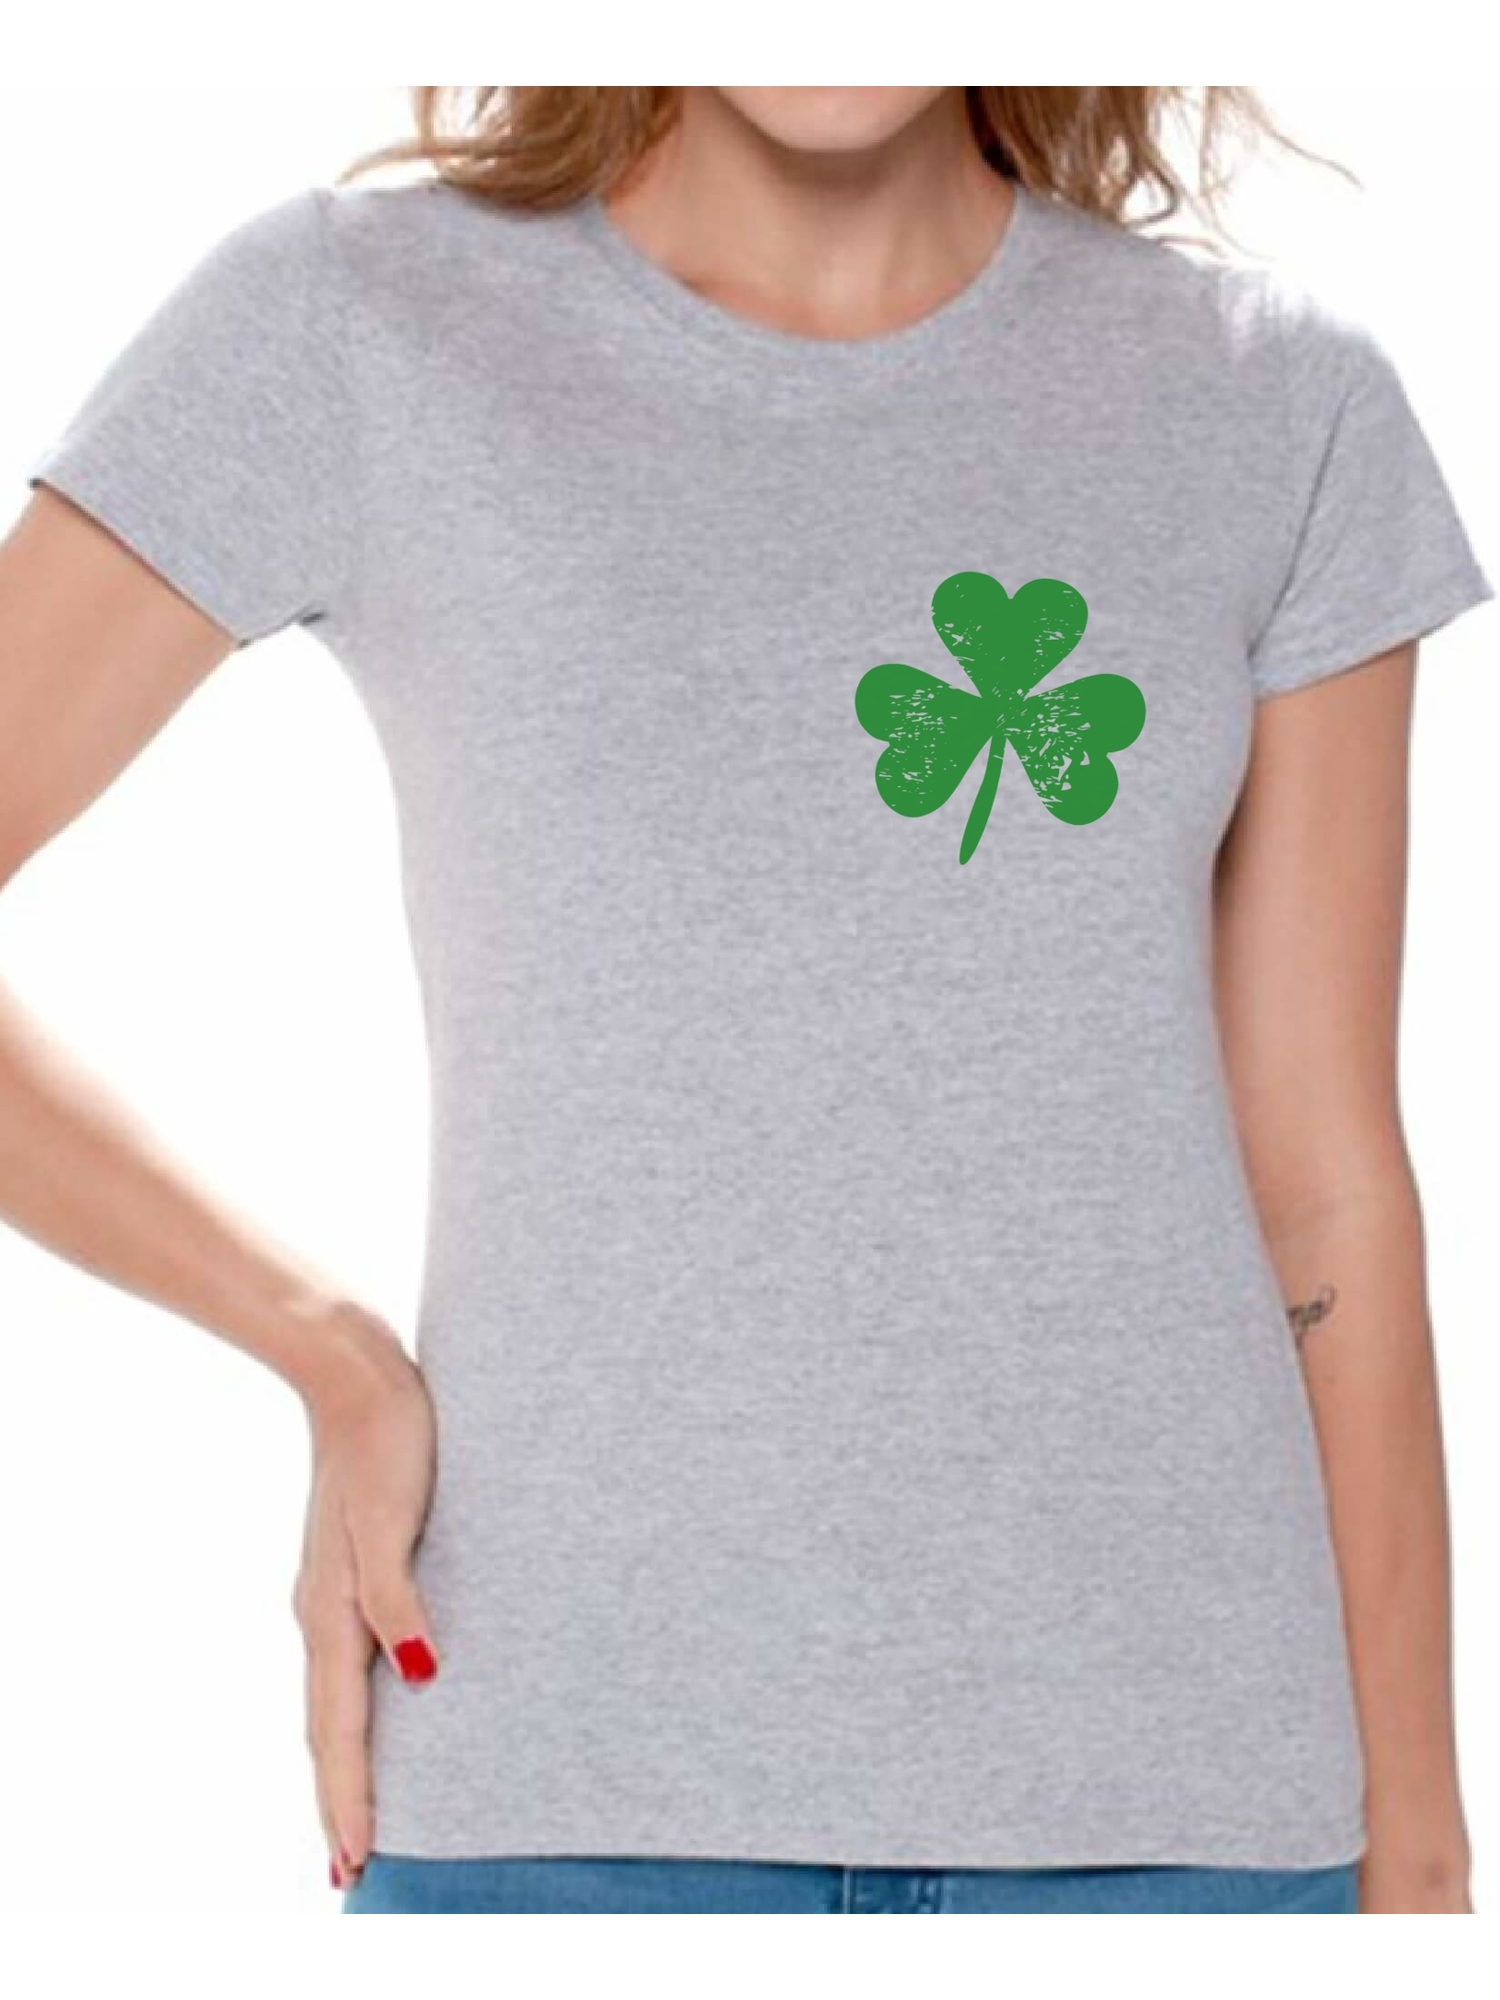 Distressed Shamrock Baby Bodysuit For St Patrick/'s Day Cute Lucky Green Patty/'s